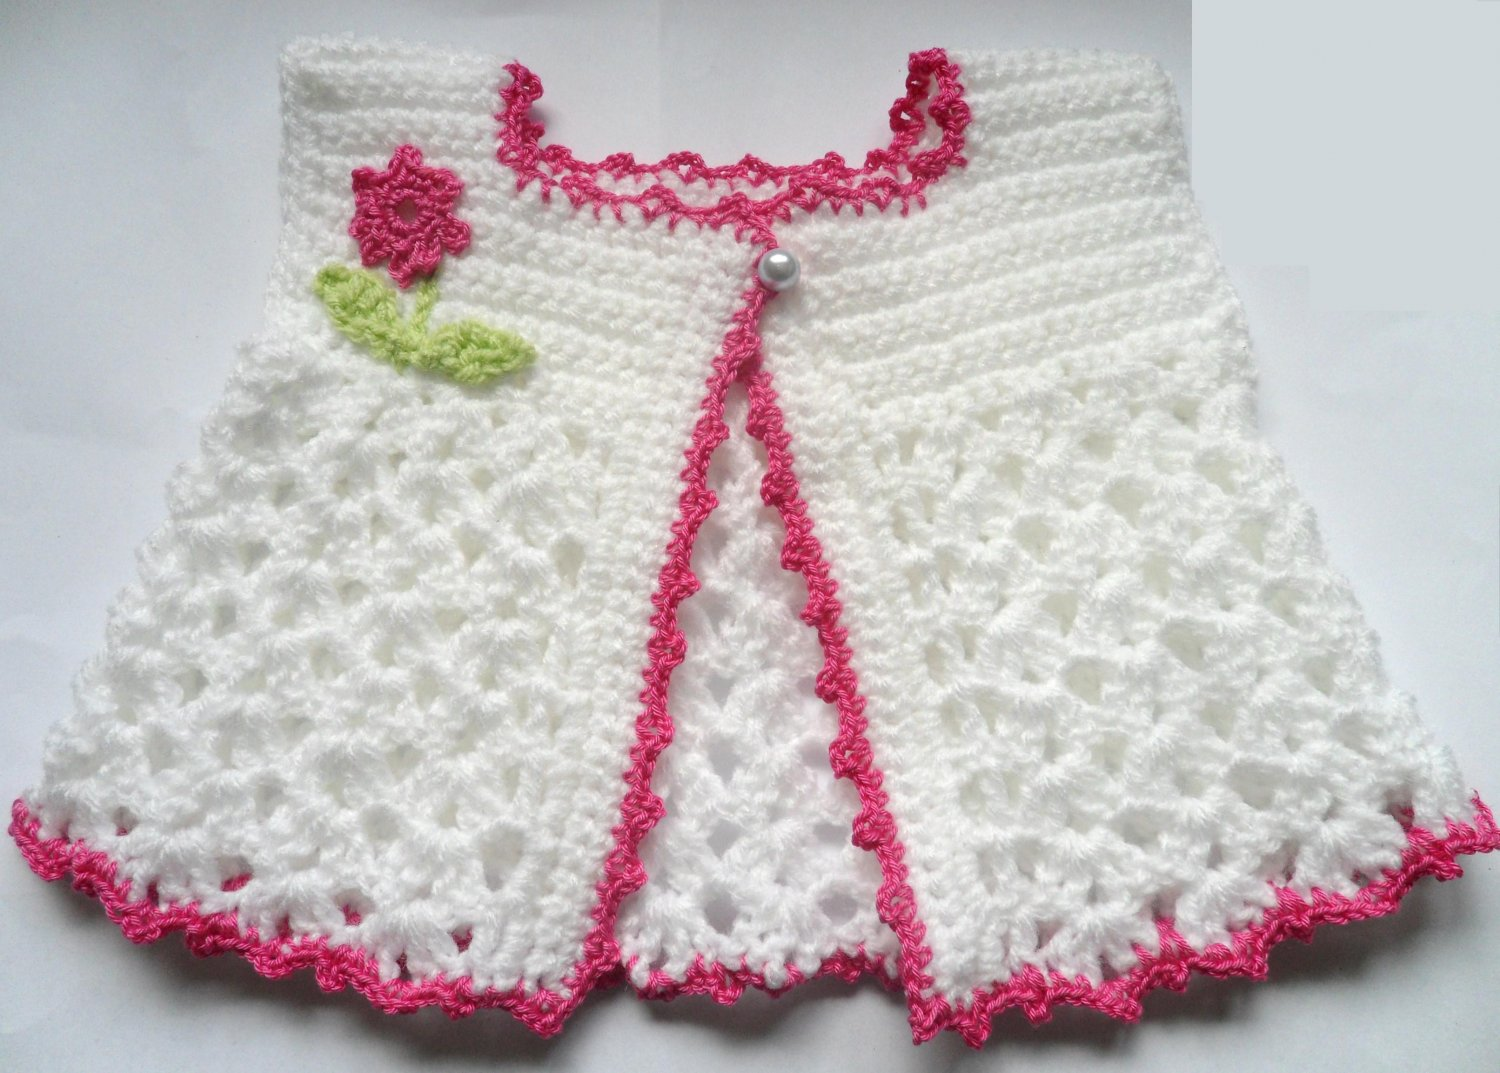 Crochet Baby Waistcoat Pattern : VKNC115 Baby Waistcoat Top with flower and leaves easy ...